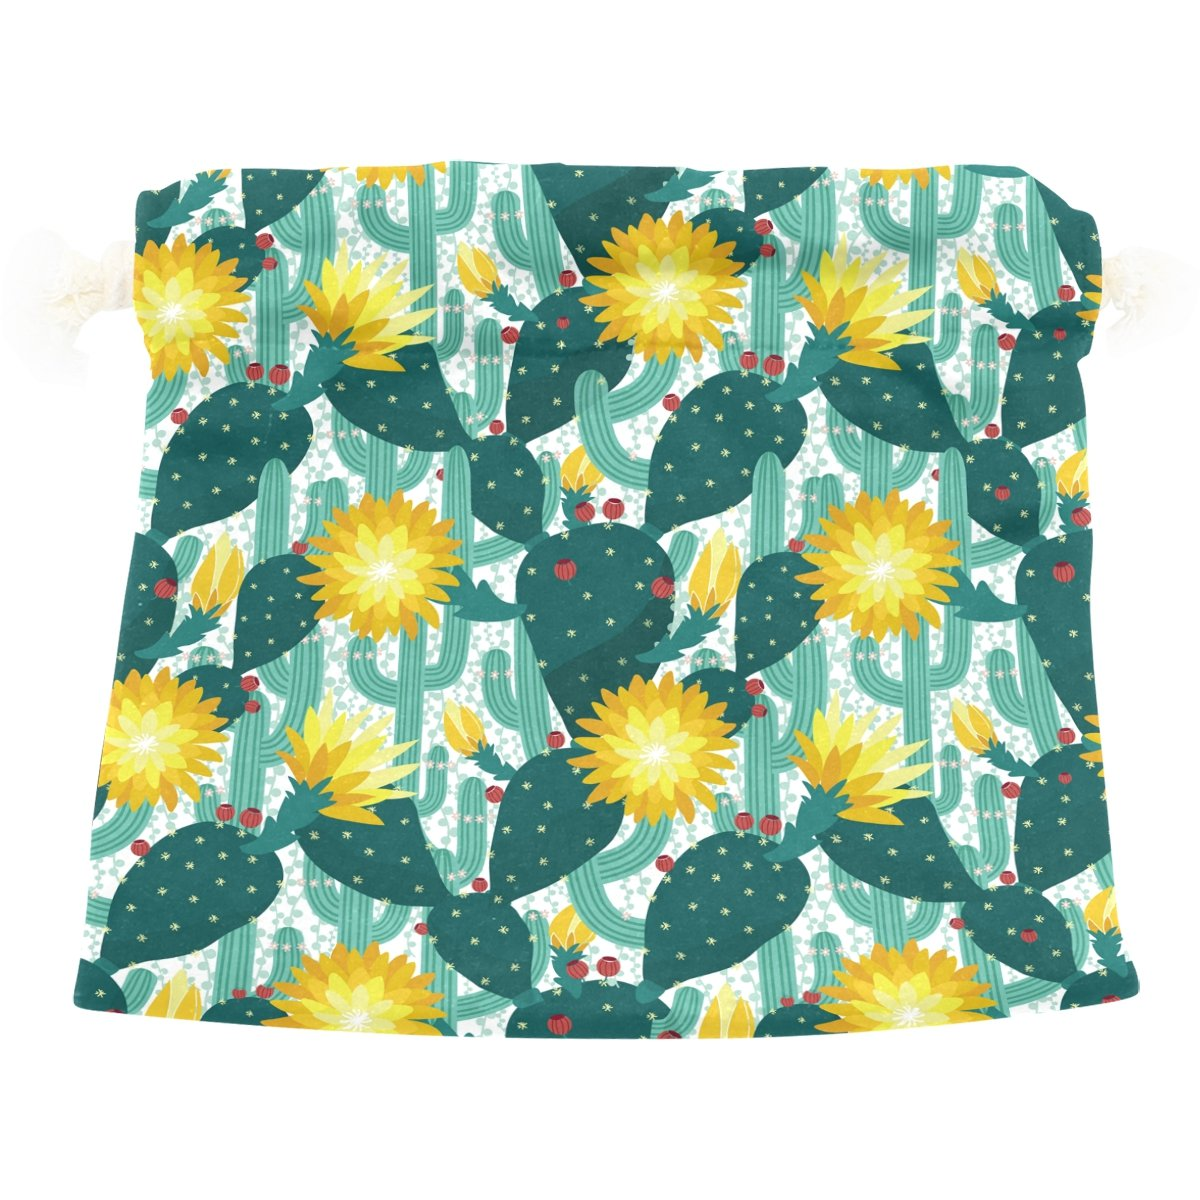 Dragon Sword Tropical Green Cactus Gift Bags Jewelry Drawstring Pouches for Wedding Party, 6x8 Inch